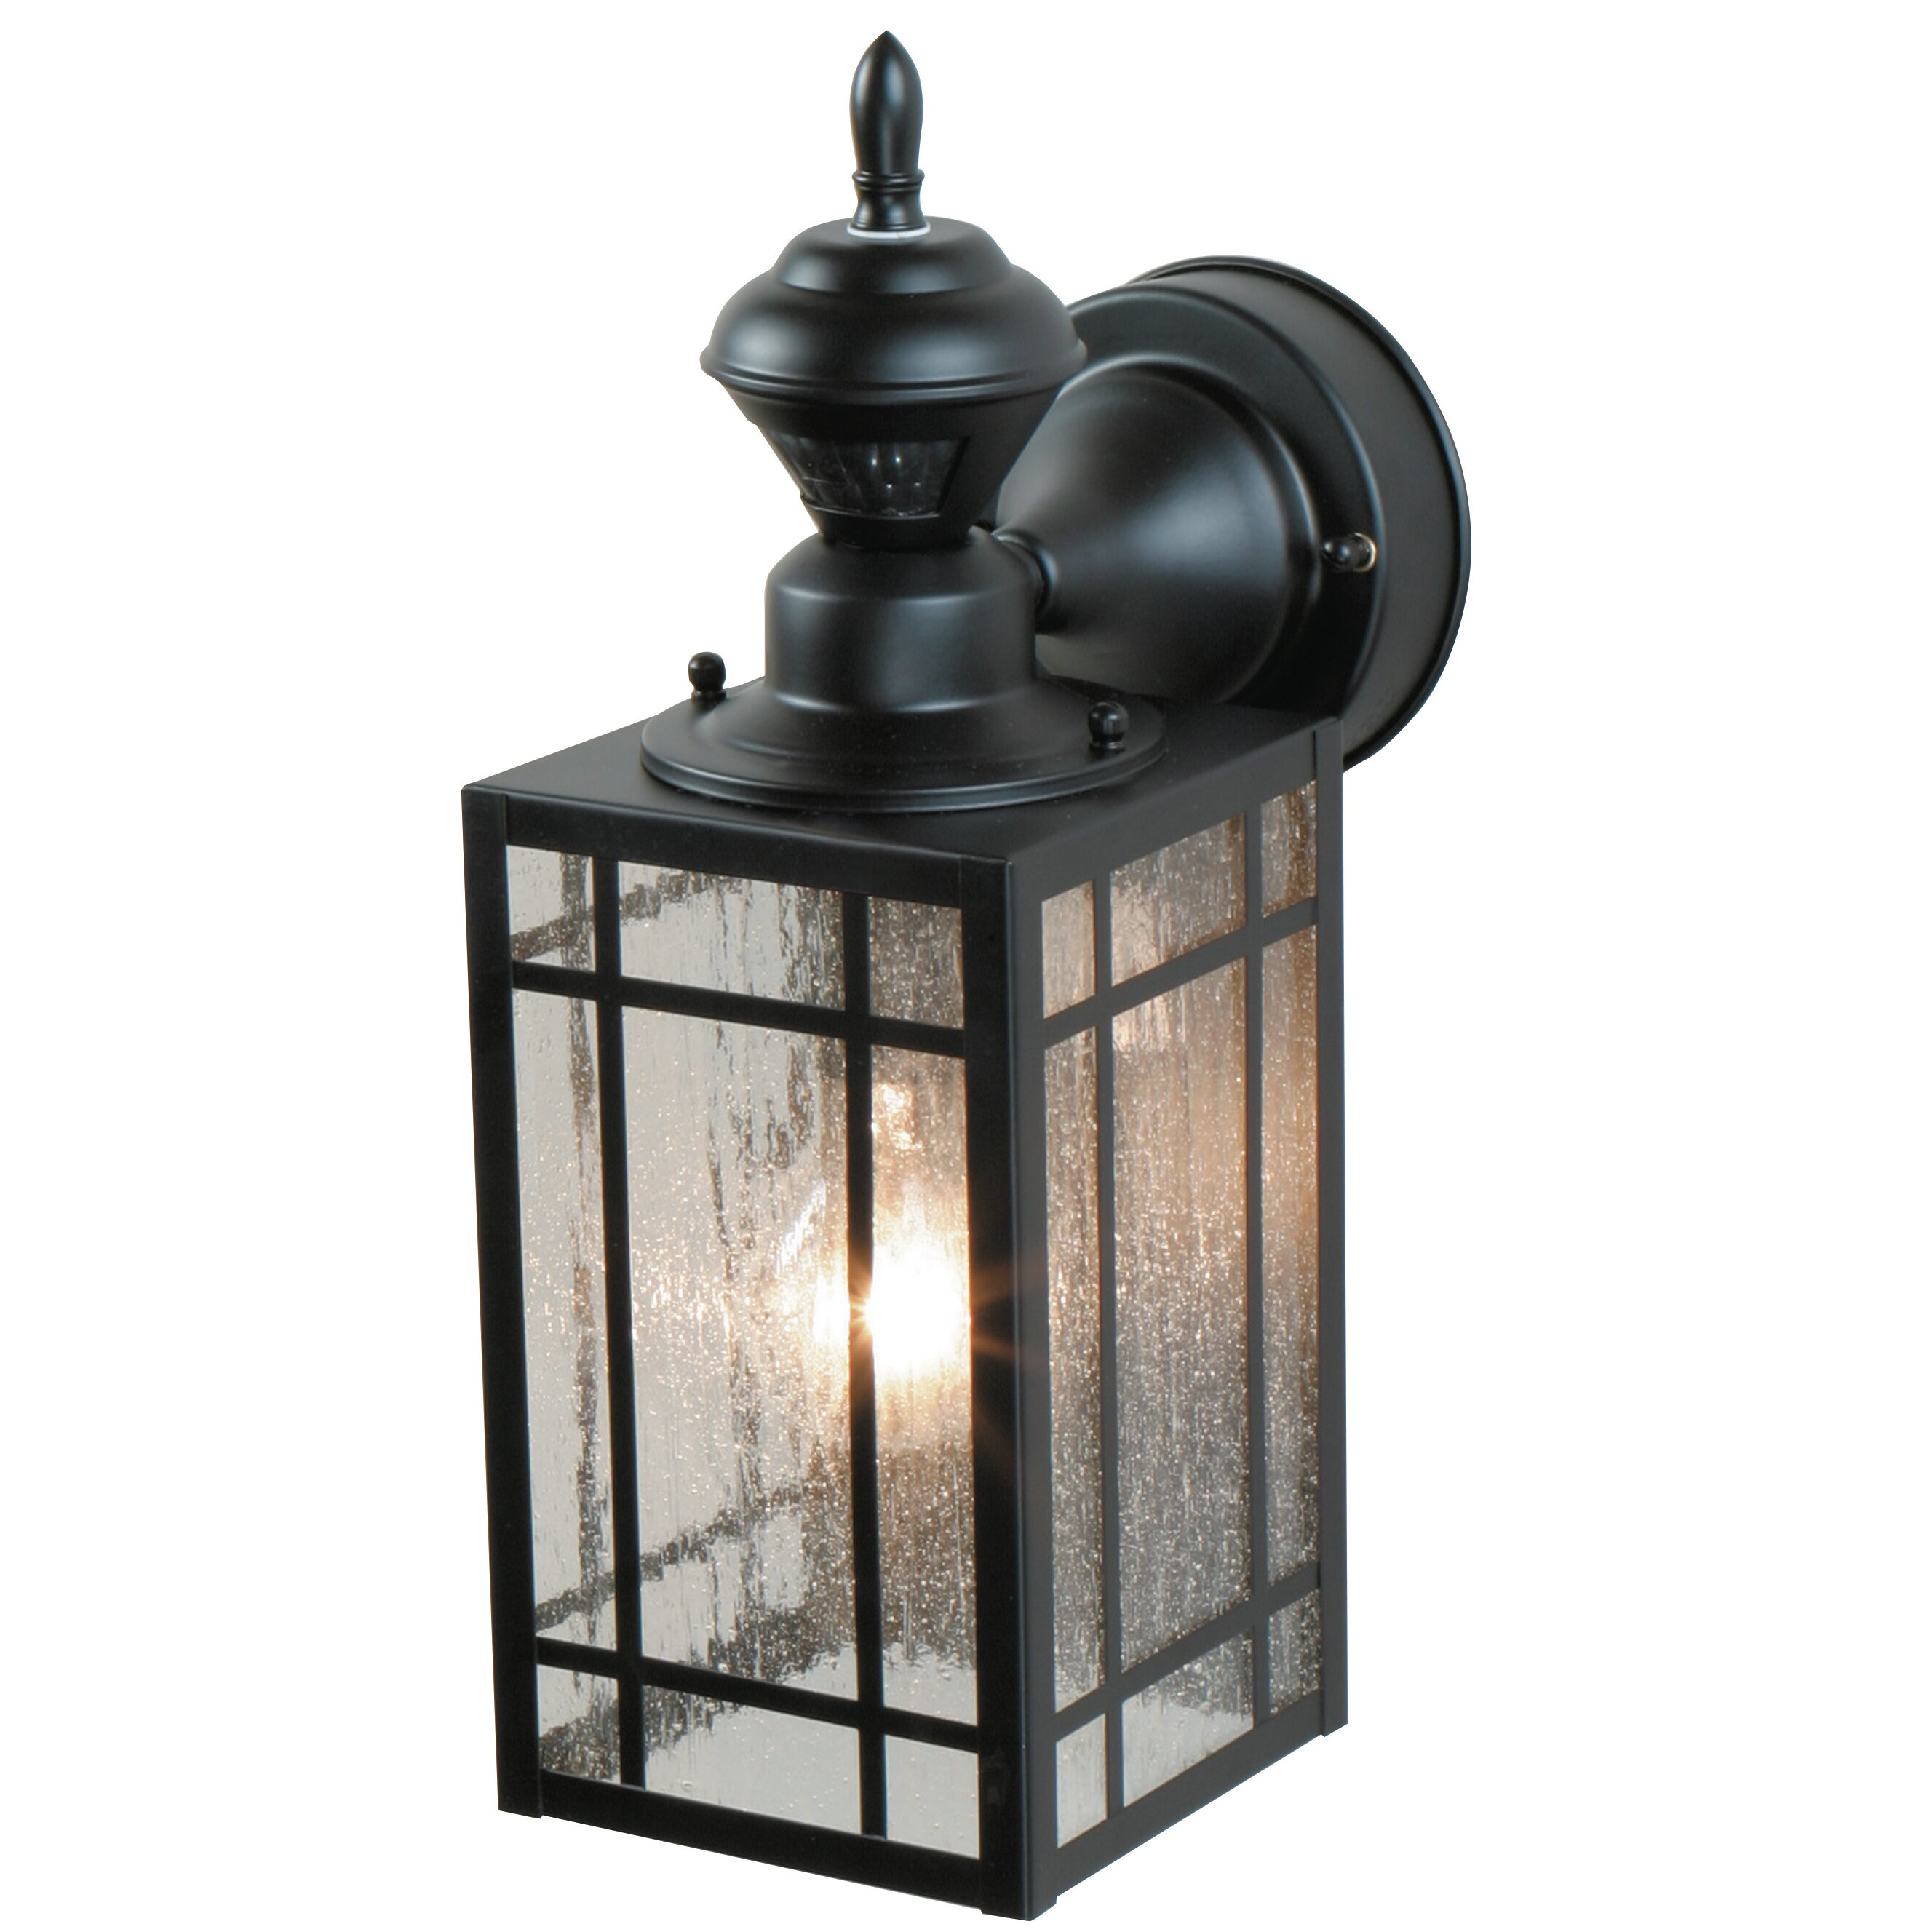 Heath-Zenith 1 Light Outdoor Wall Lantern & Reviews Wayfair